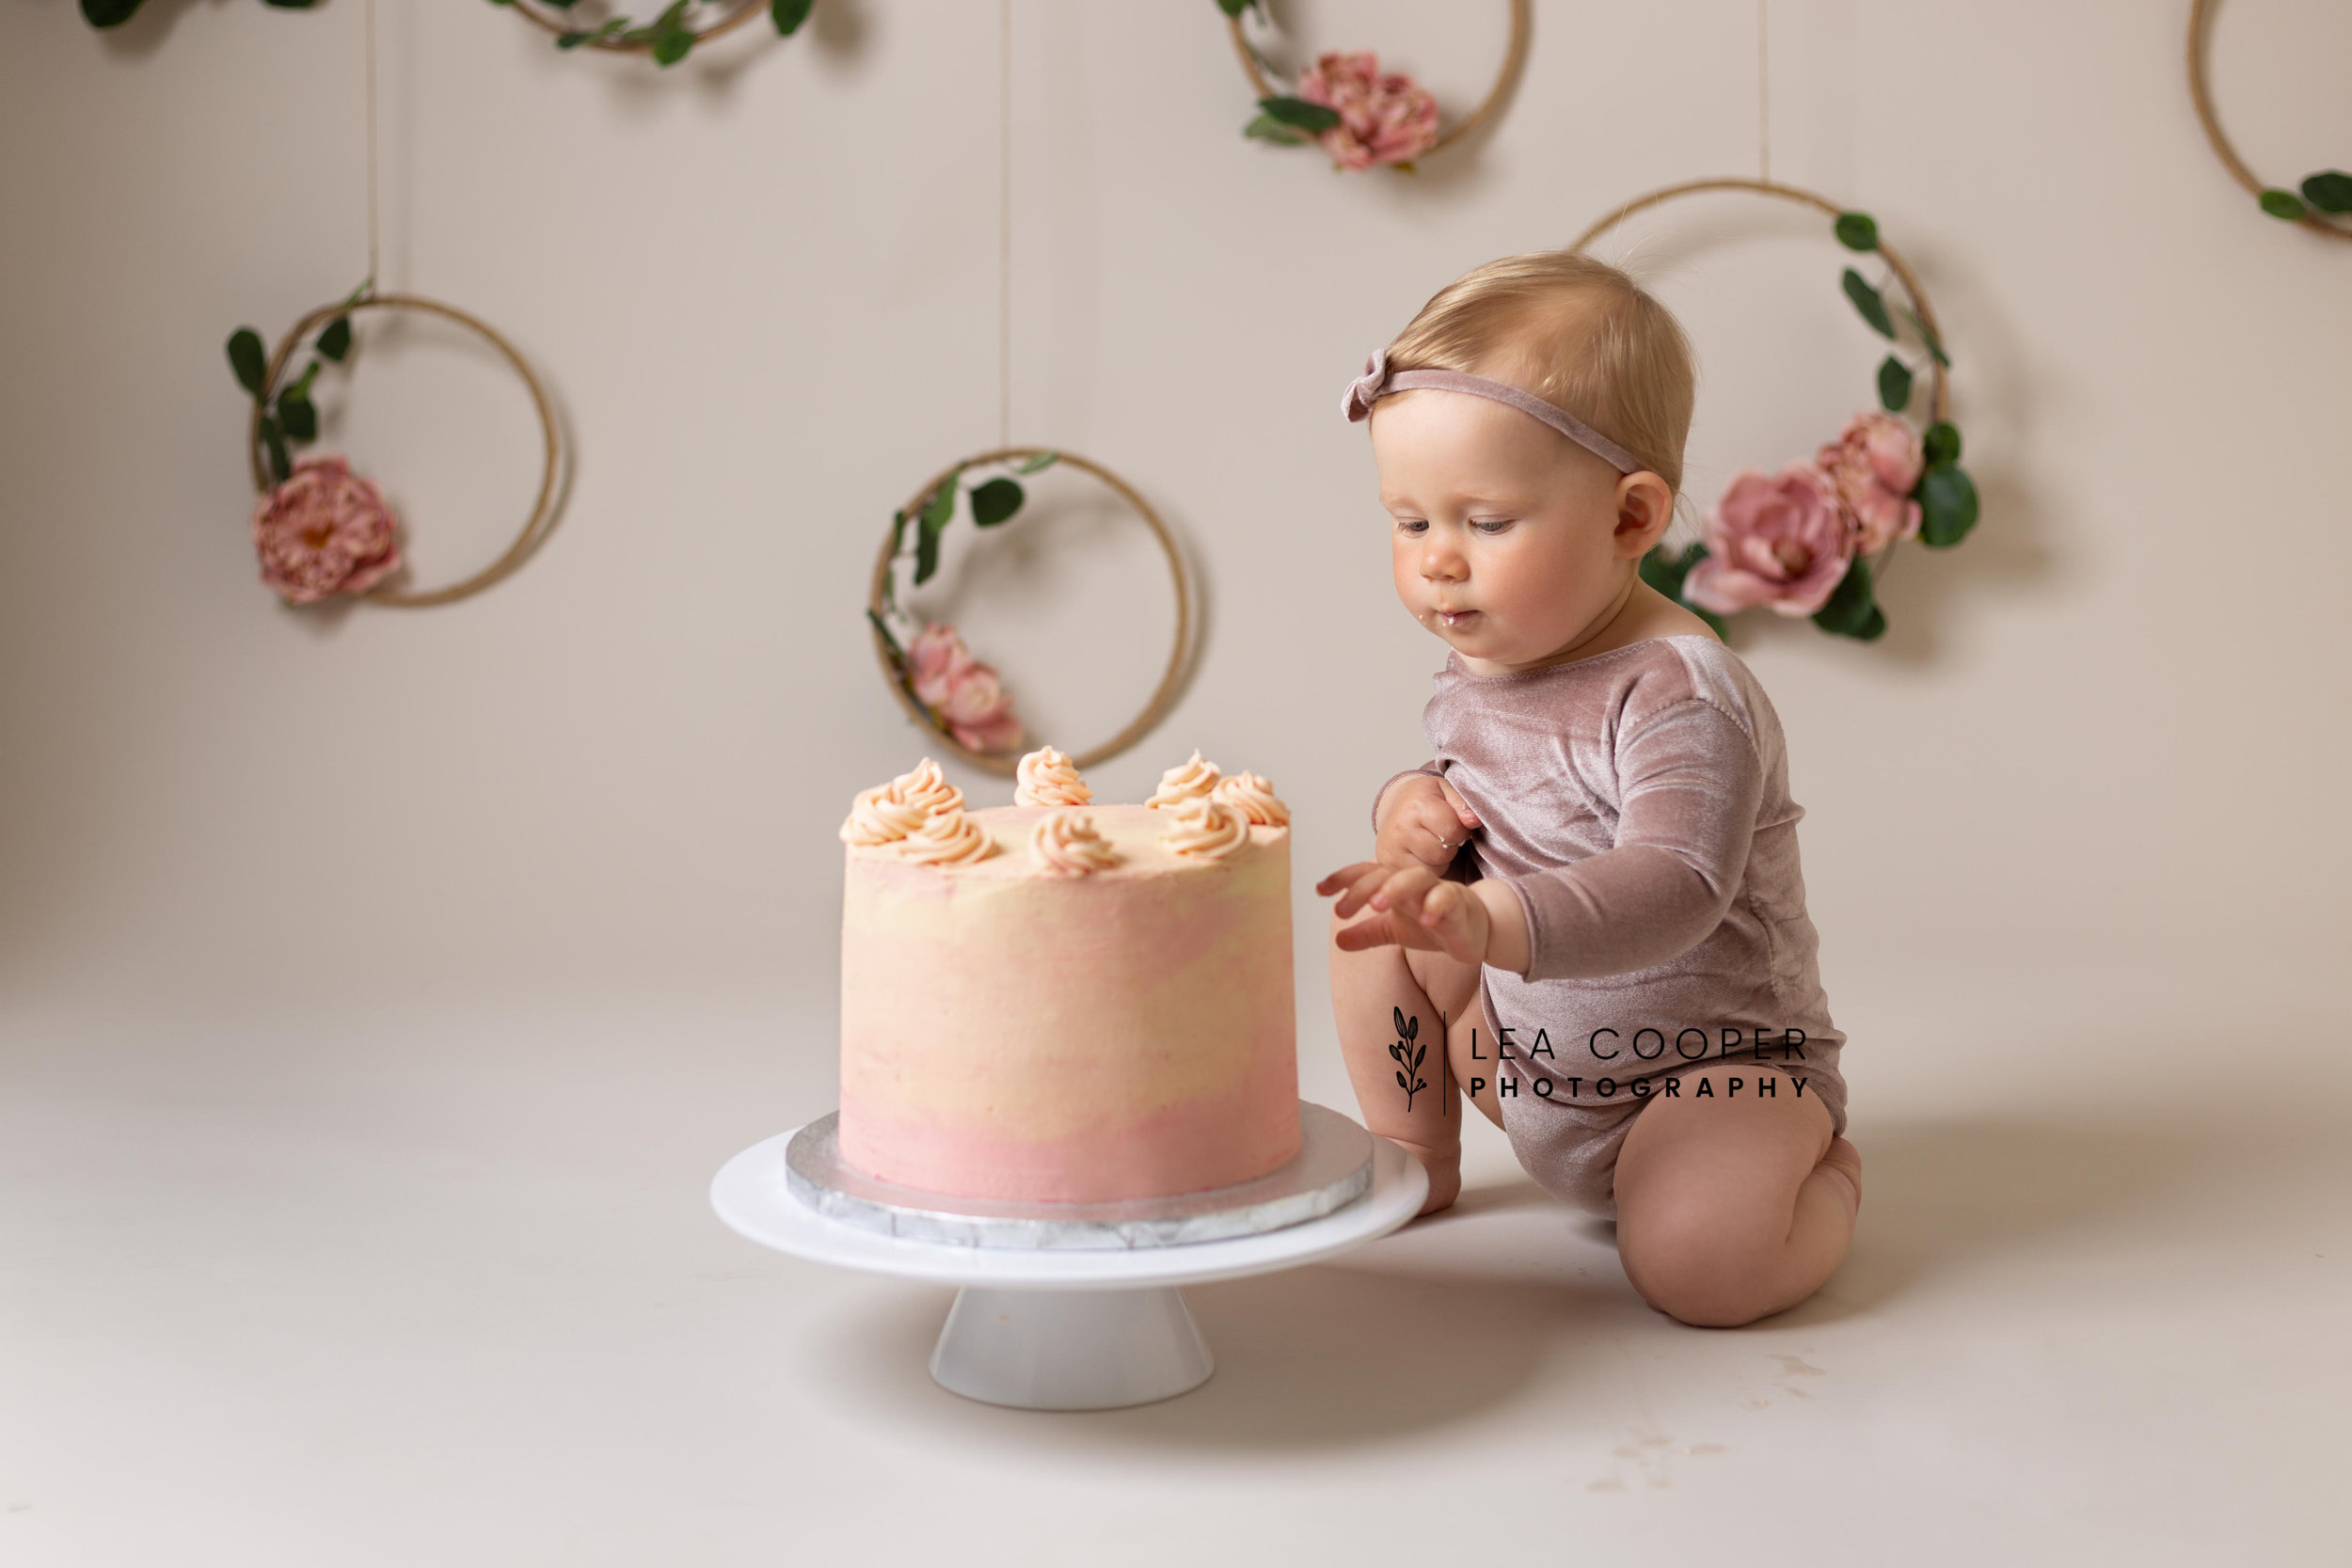 LEA-COOPER-PHOTOGRAPHY-CAKE-SMASH-PHOTOS-BIRTHDAY-PICTURES-WILLENHALL-WEST-MIDLANDS-SPLASH-CHILD-PHOTOGRAPHY-PORTRAIT-WEST-MIDLANDS-WOLVERHAMPTON-7.jpg